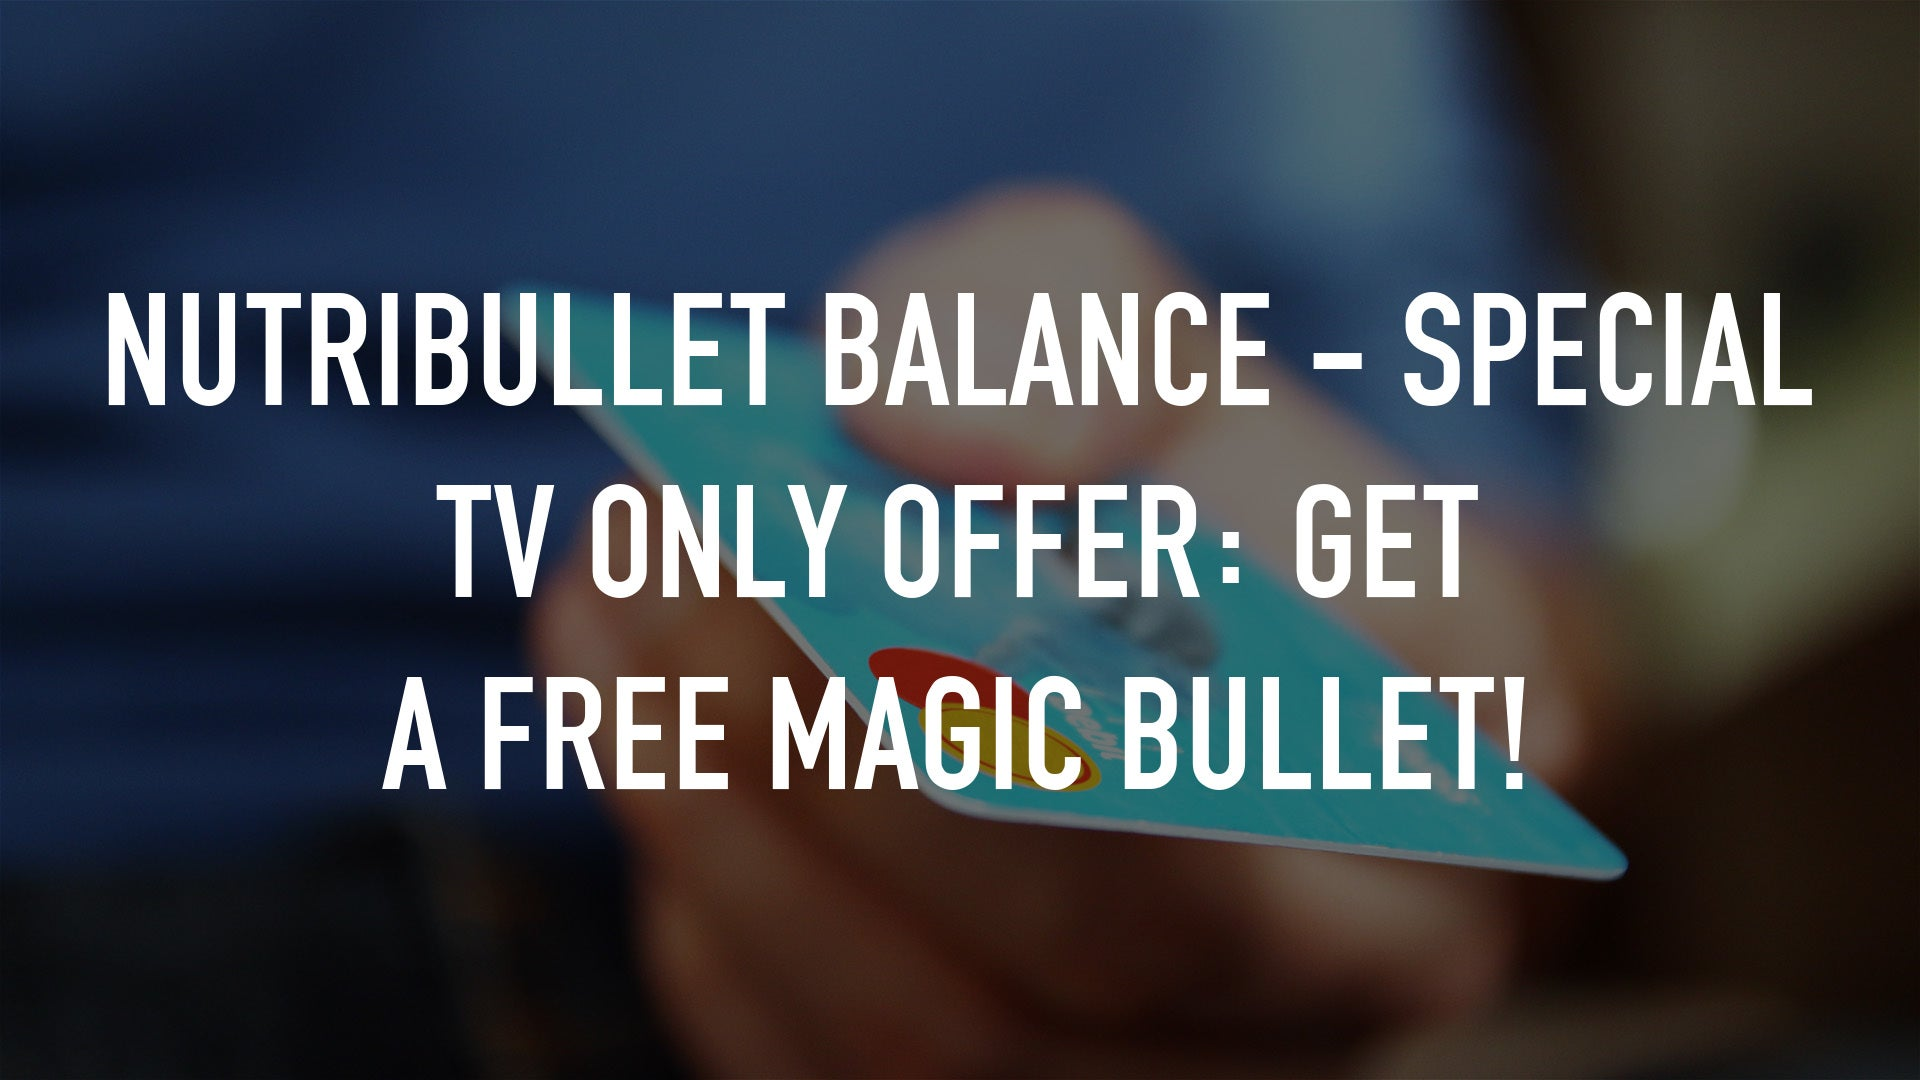 NutriBullet Balance - Special TV Only Offer: Get a FREE Magic Bullet!